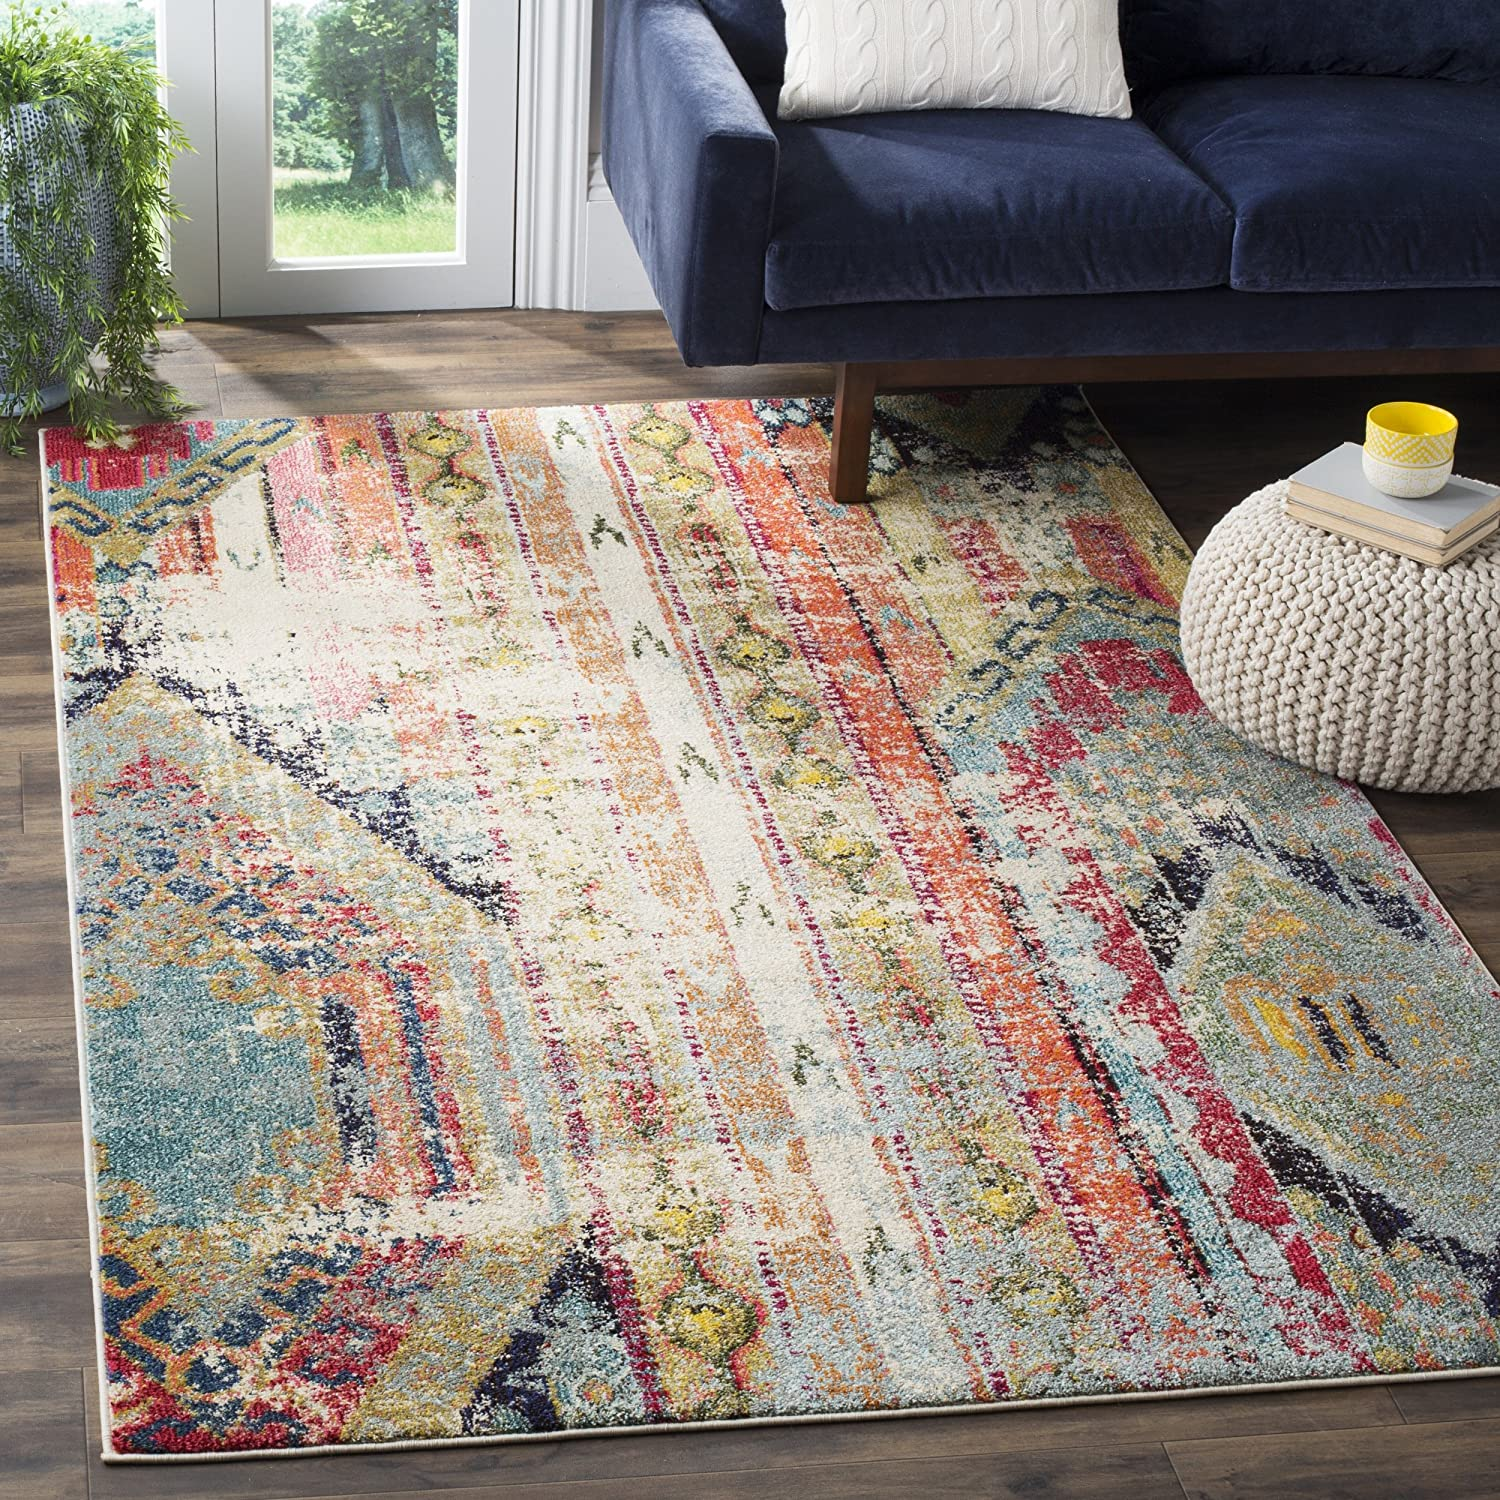 rugs to brilliant mats bathroom rug how com and throughout bath for overstock care